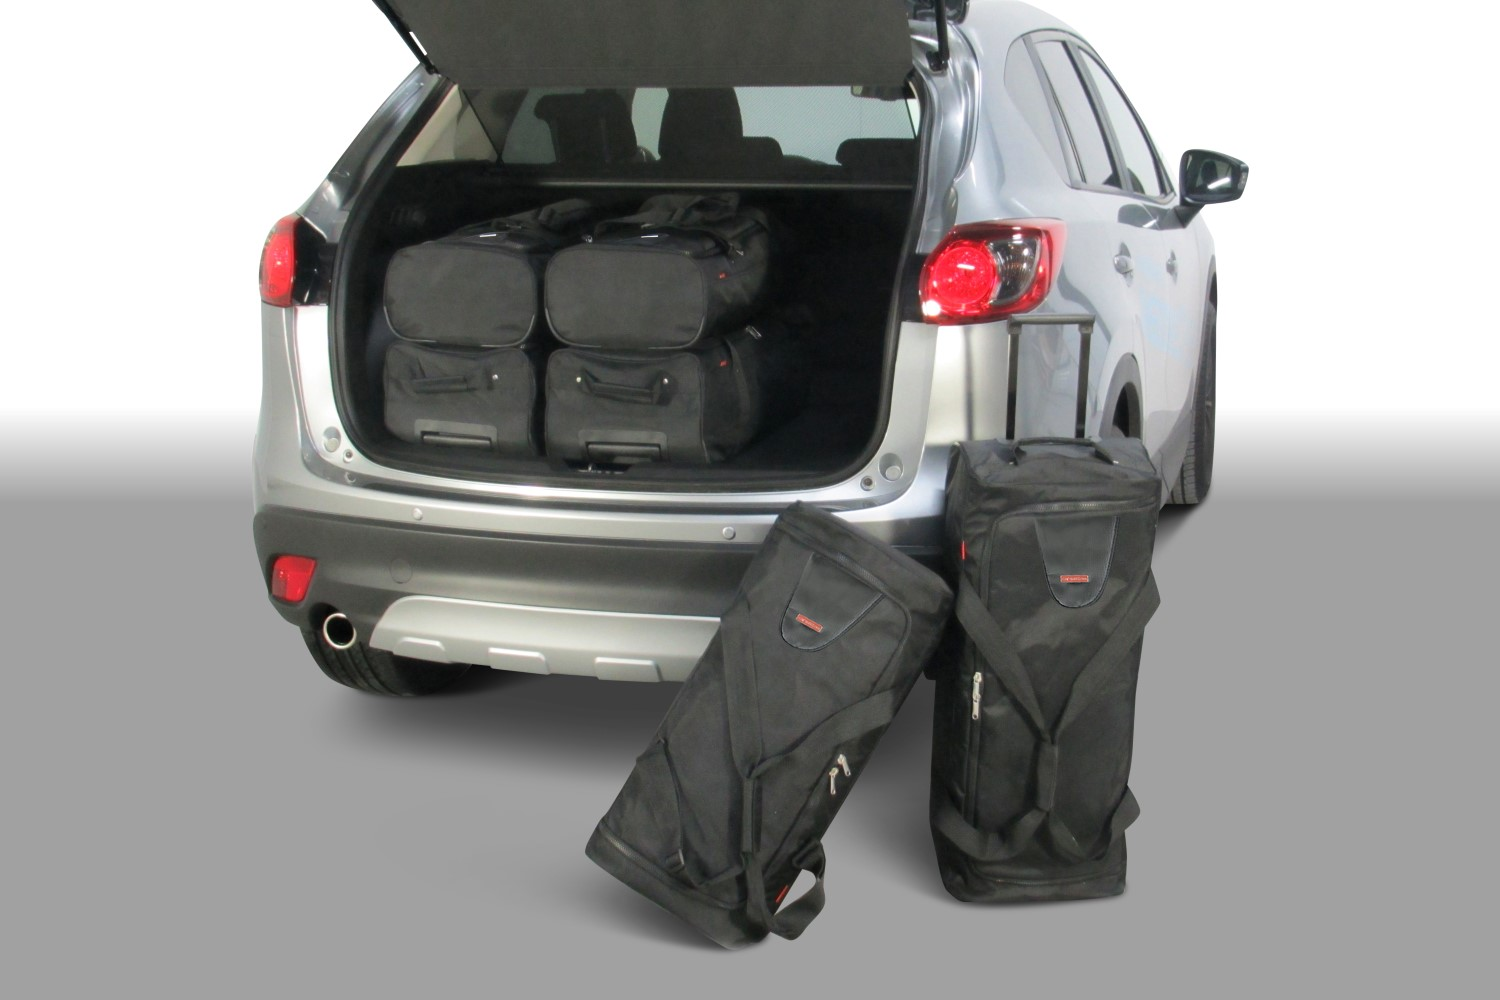 Mazda CX-5 (KE) 2012-2017 Car-Bags.com travel bag set (1)